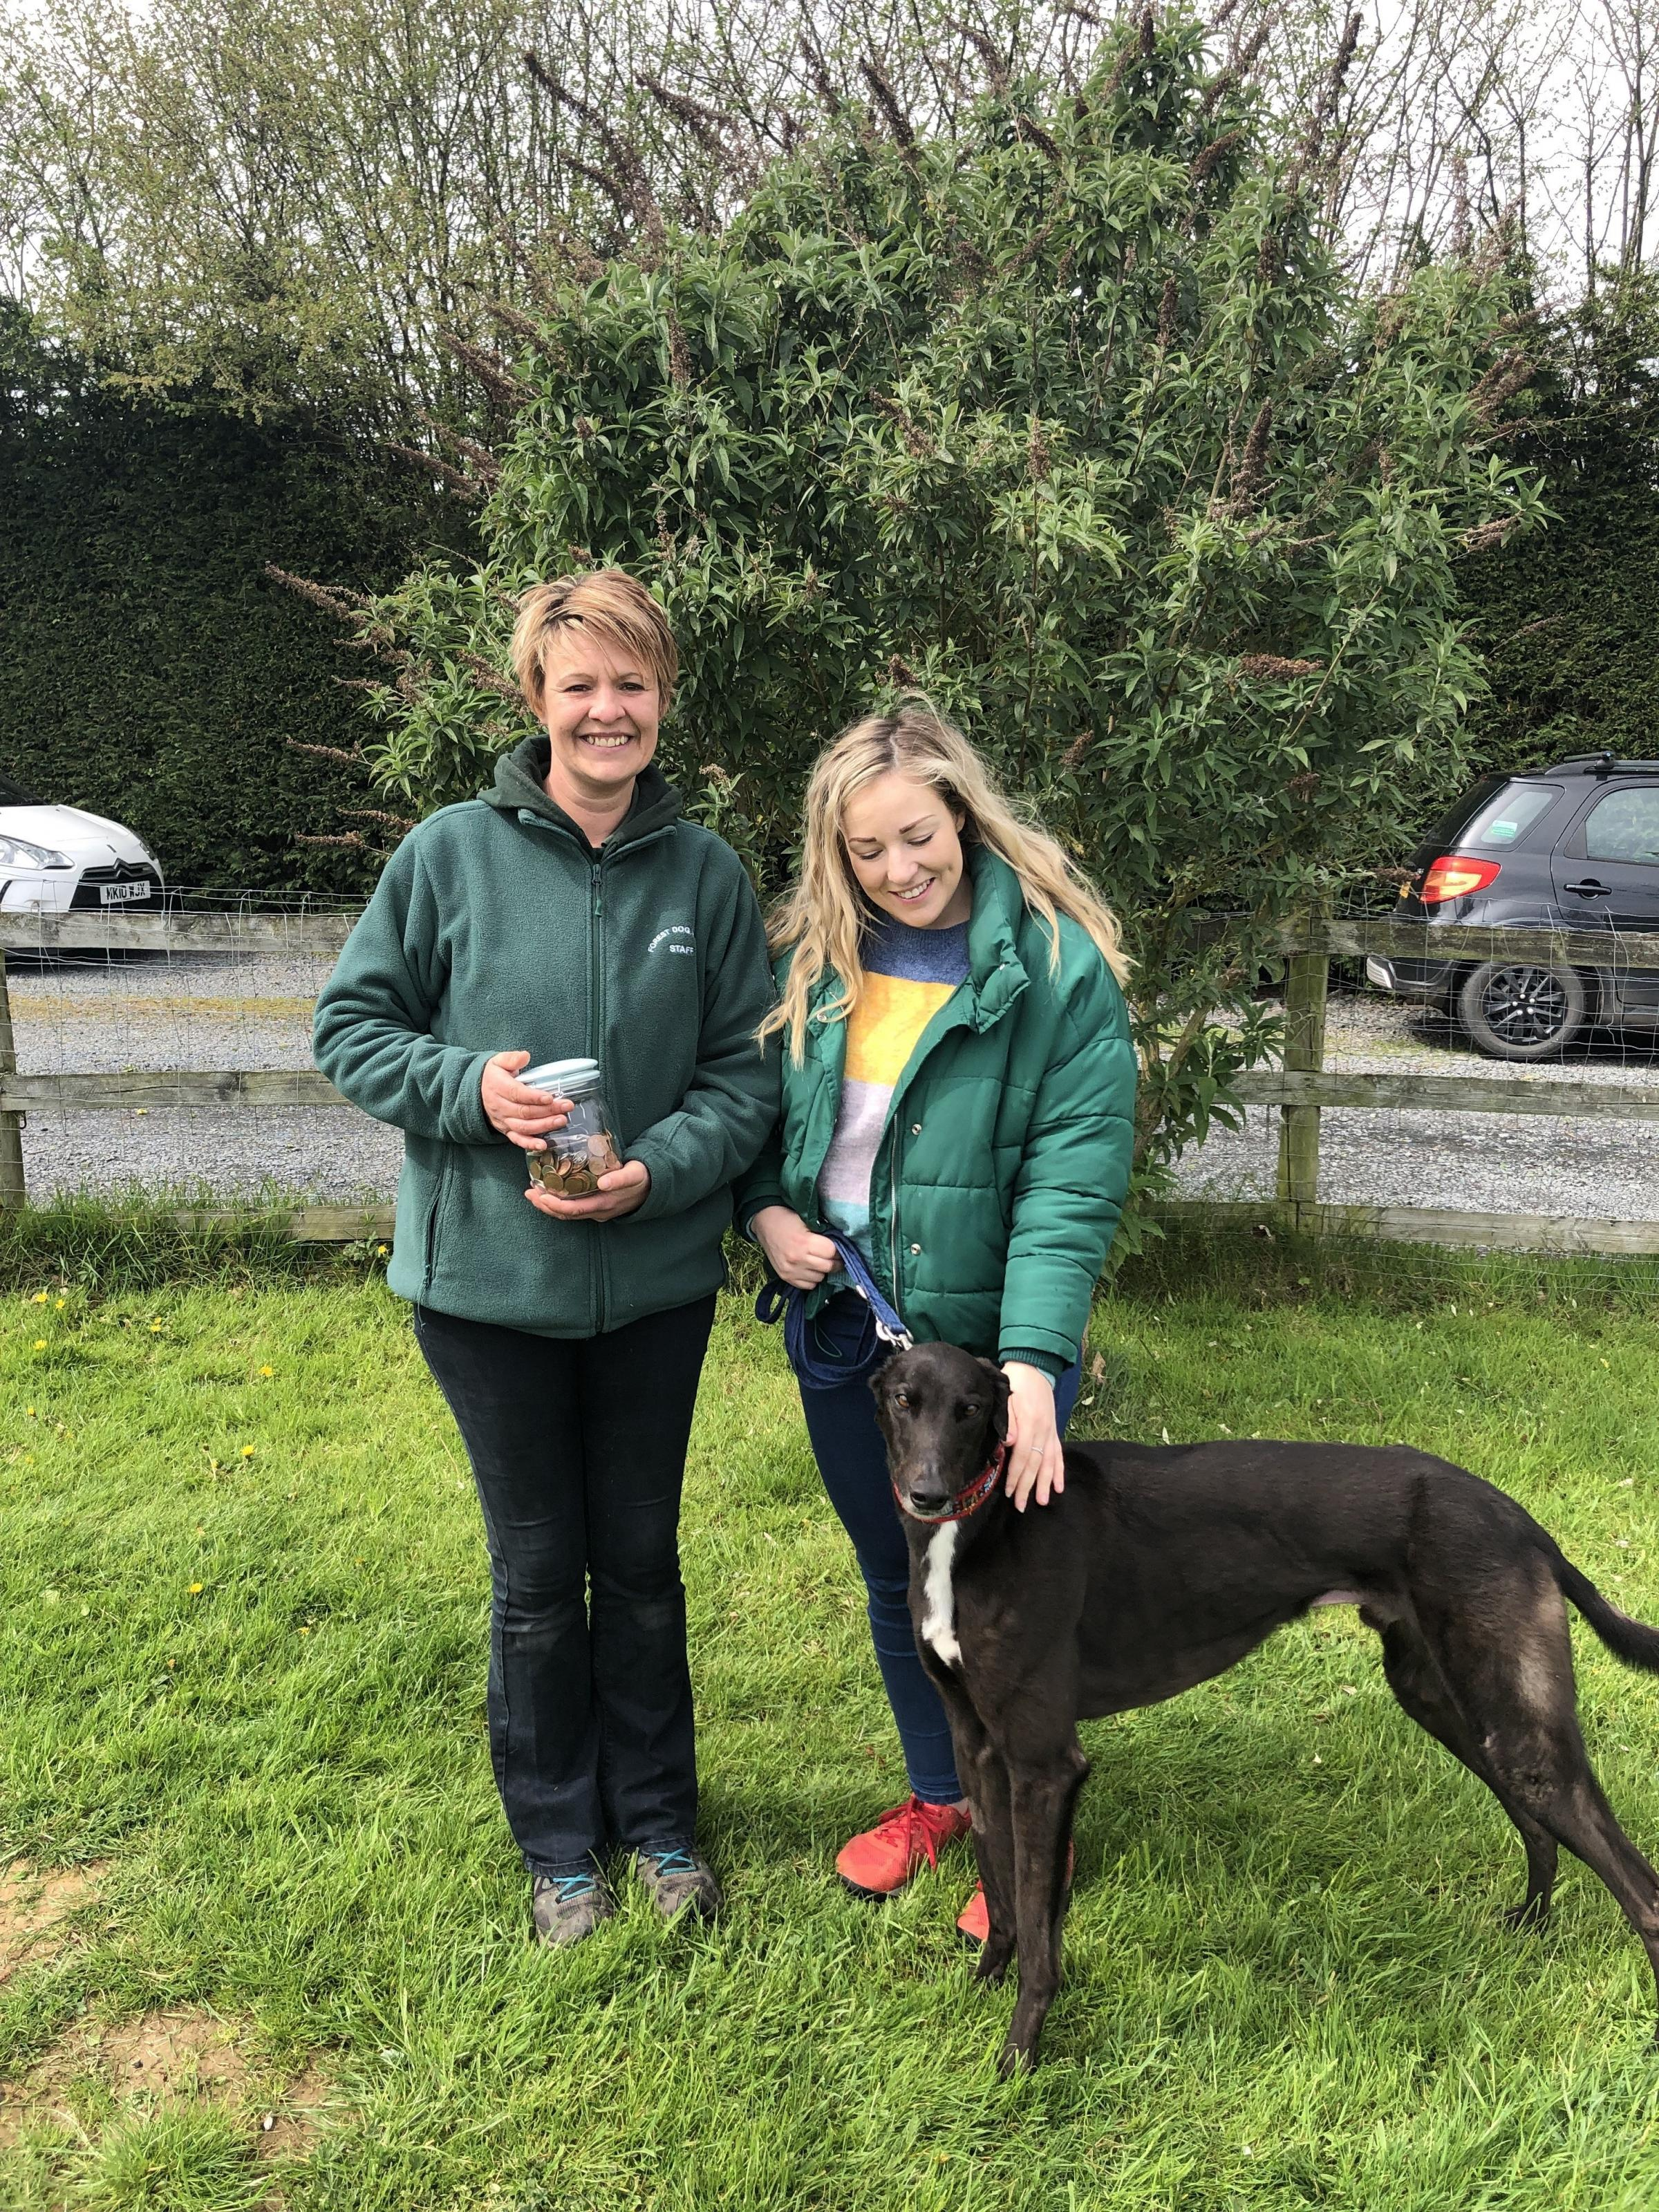 Emma Shaffery, Forest Dog Rescue manager, and Controlaccount's Carla Knights